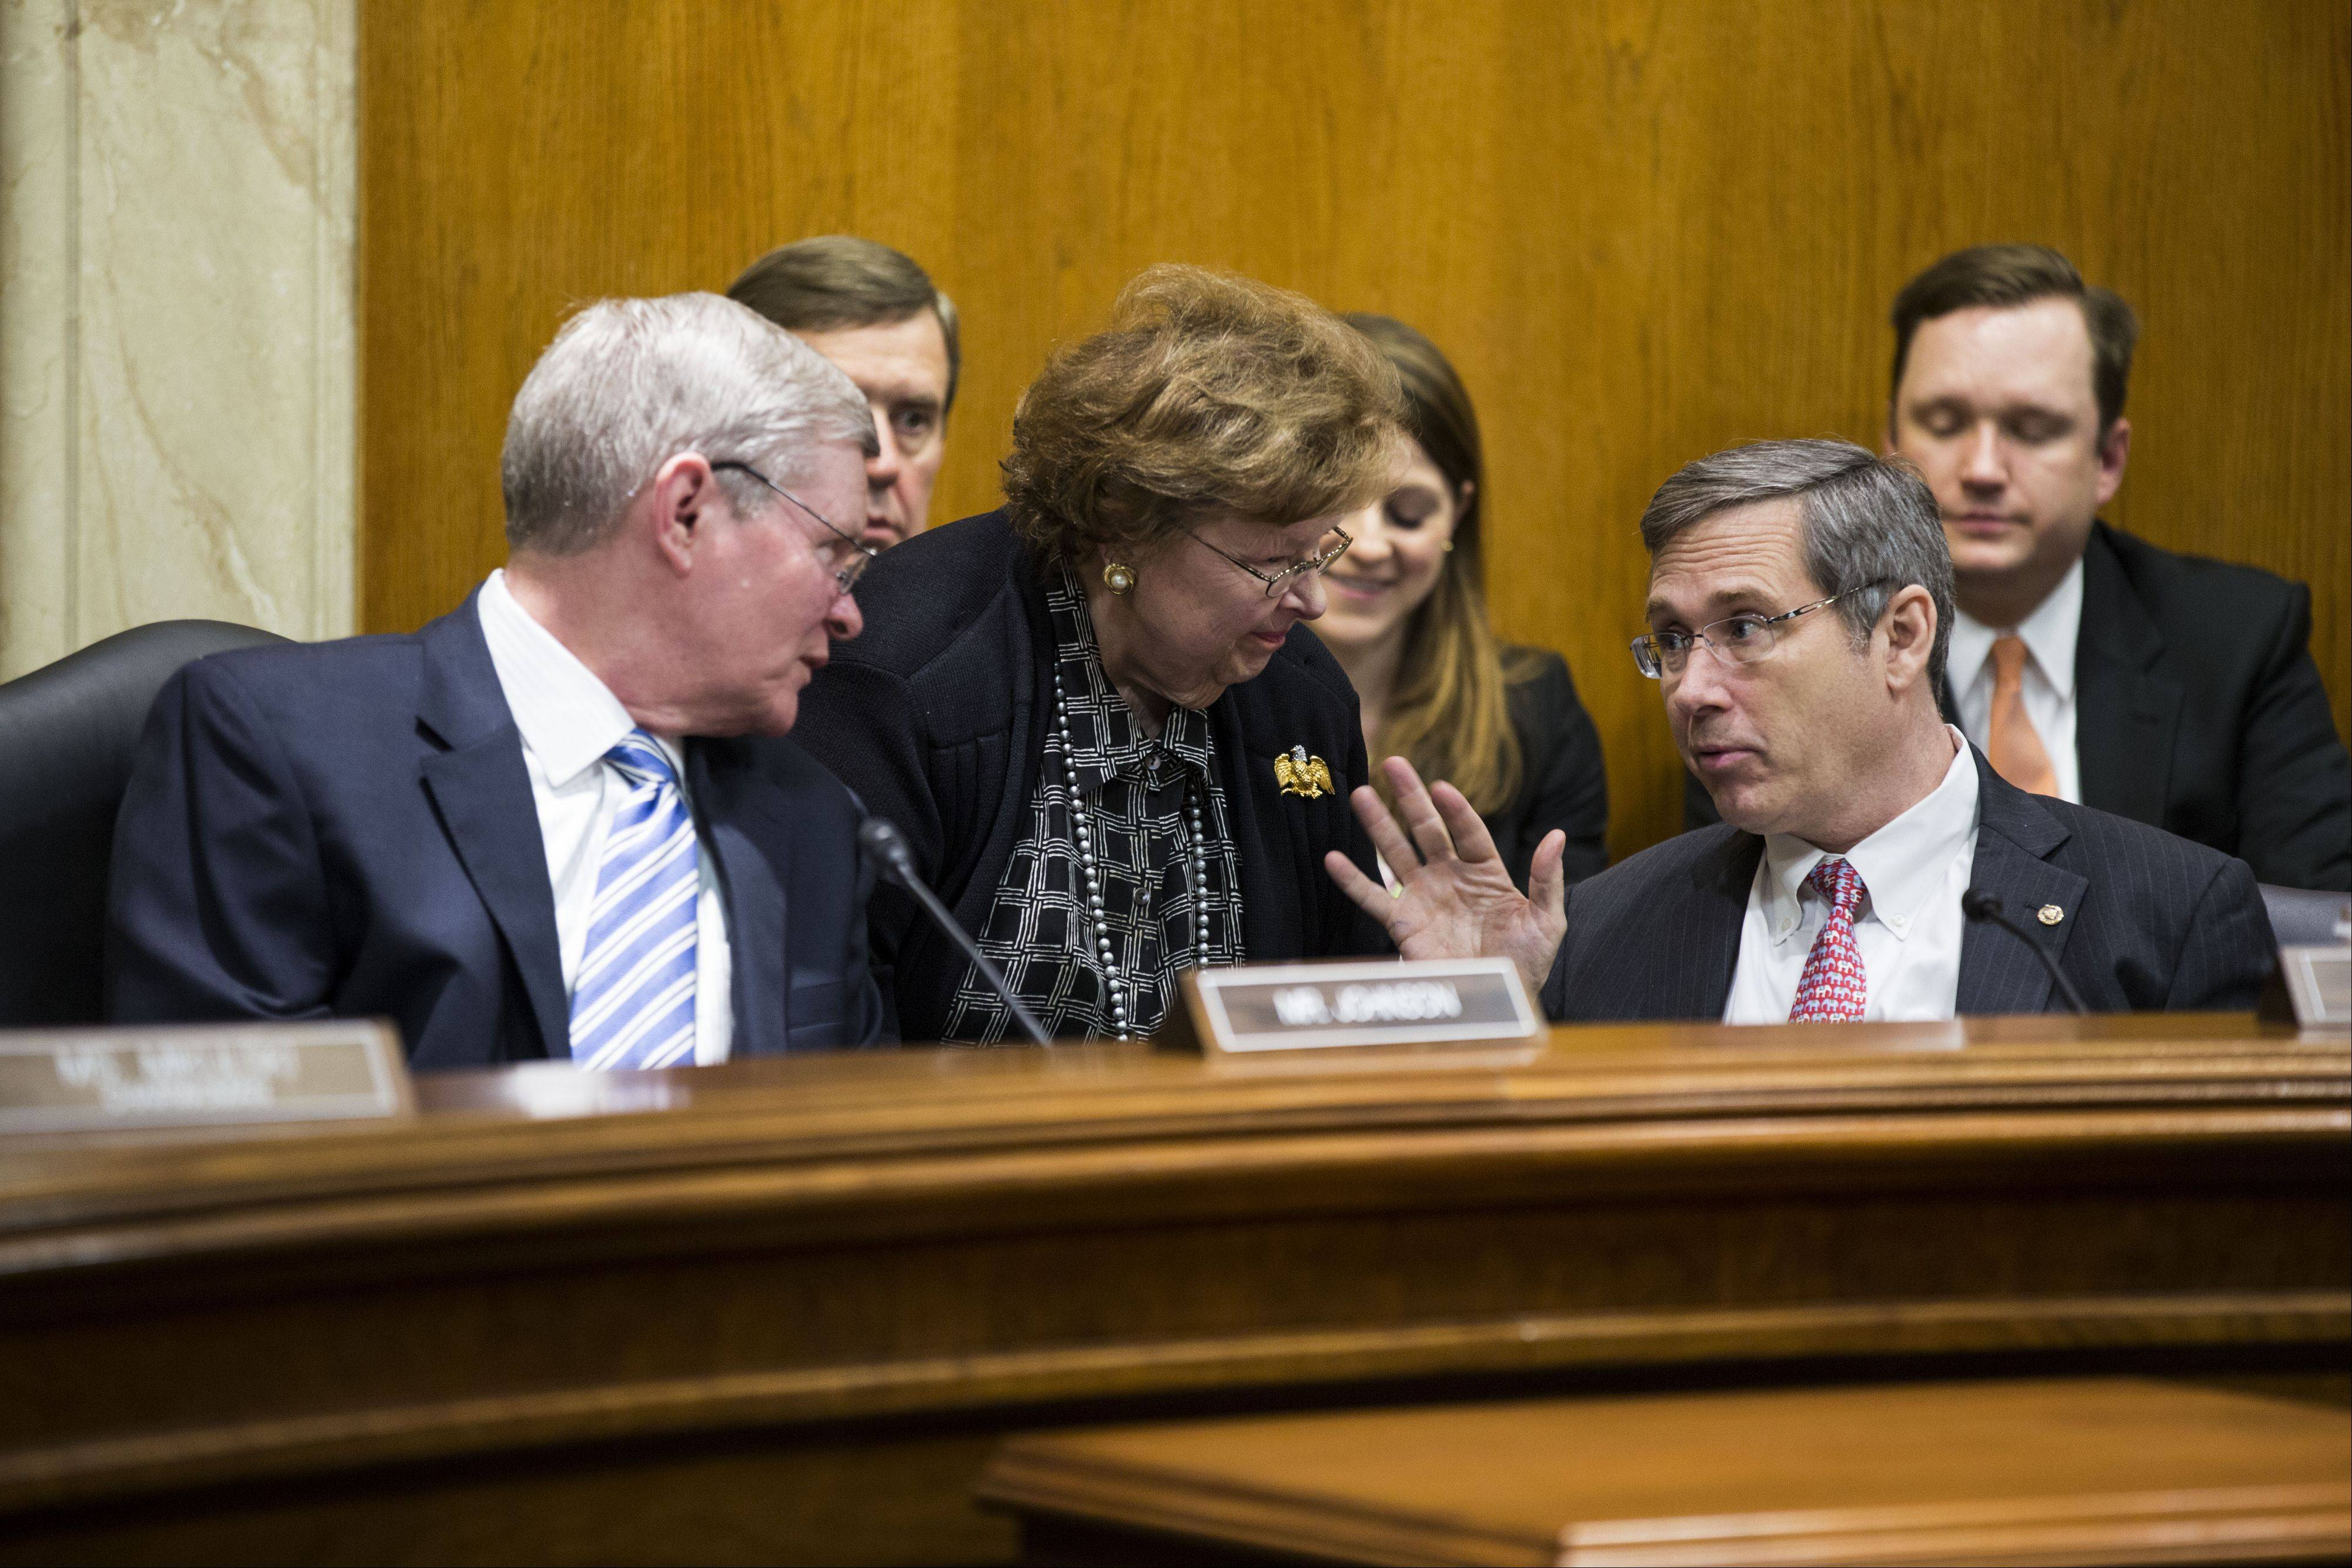 U.S. senators Mark Kirk, a Highland Park Republican at front right, and Tim Johnson, a South Dakota Democrat at left, speak with others after a Military Construction, Veteran Affairs, and Related Agencies Subcommittee hearing in Washington, D.C. Both senators returned to Congress after suffering strokes.